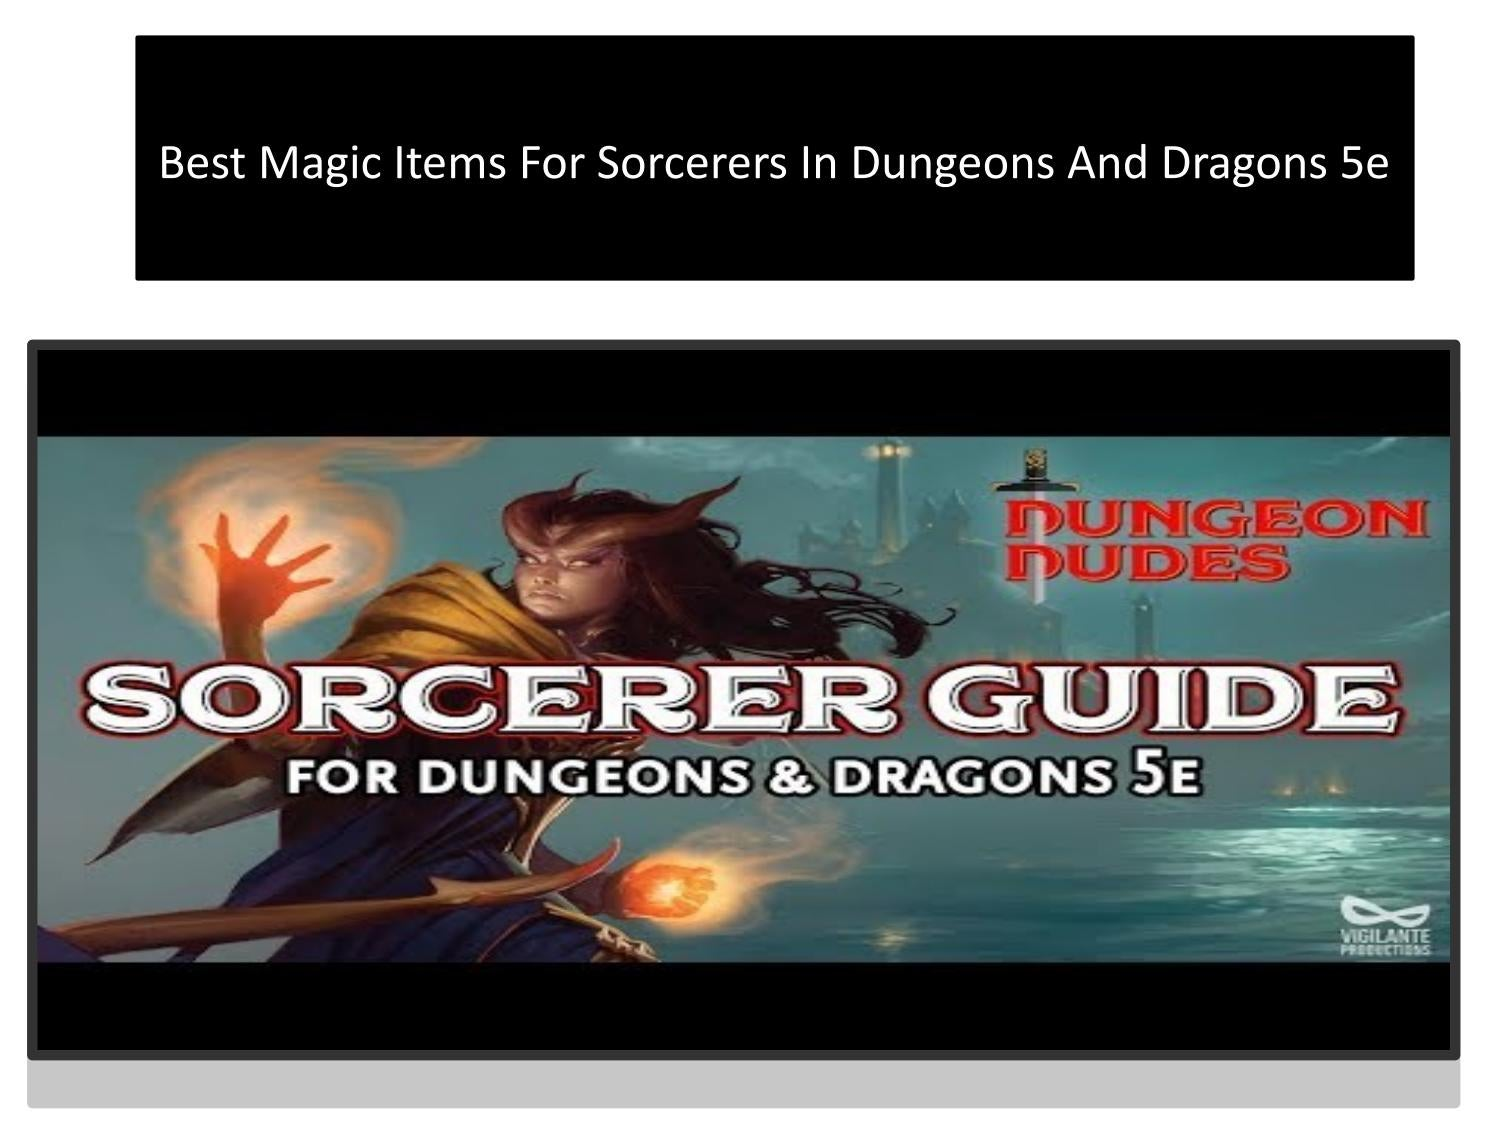 Best Magic Items For Sorcerers In Dungeons And Dragons 5e By Eva Winget Issuu I'd move the pearl of power to rhest so it can serve as a clue pointing to the fane. best magic items for sorcerers in